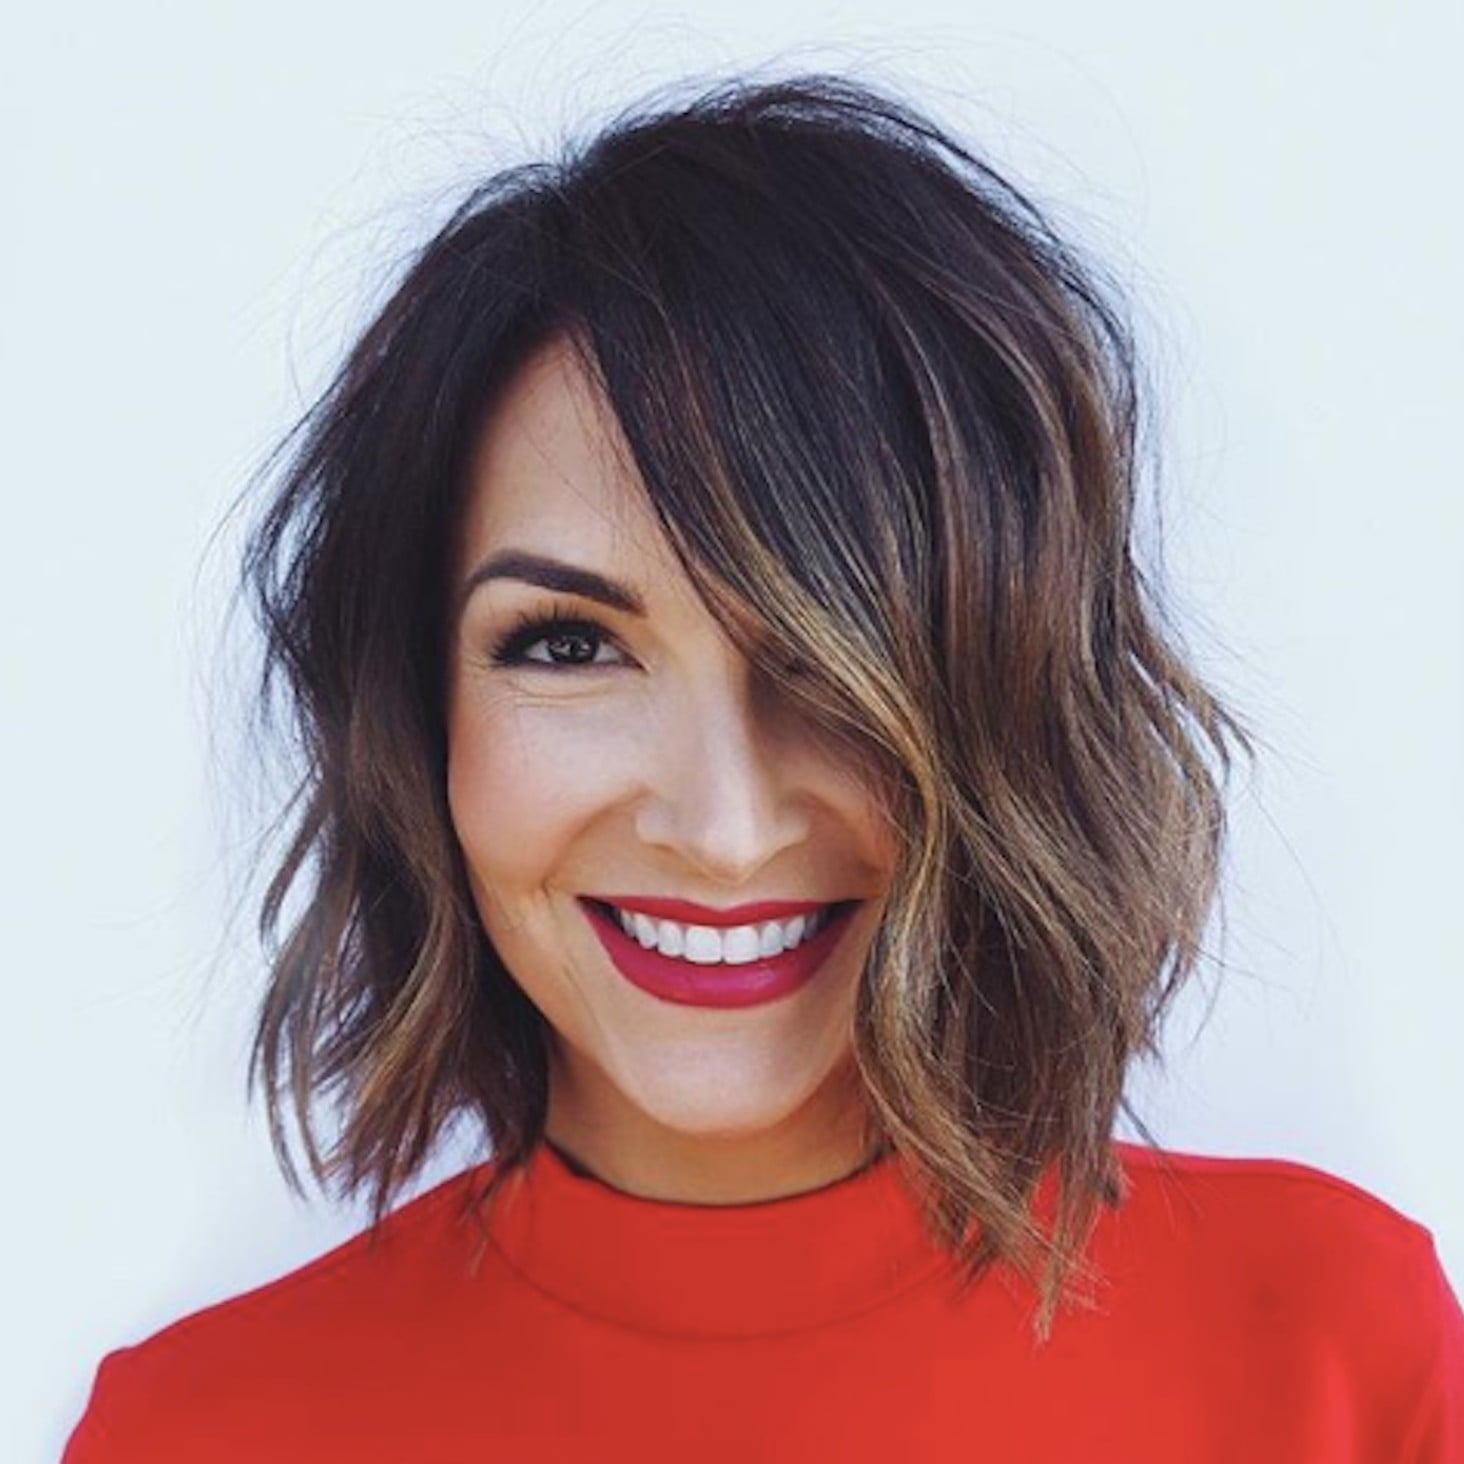 50 Best Bob Haircut Pictures 2019 | POPSUGAR Beauty UK